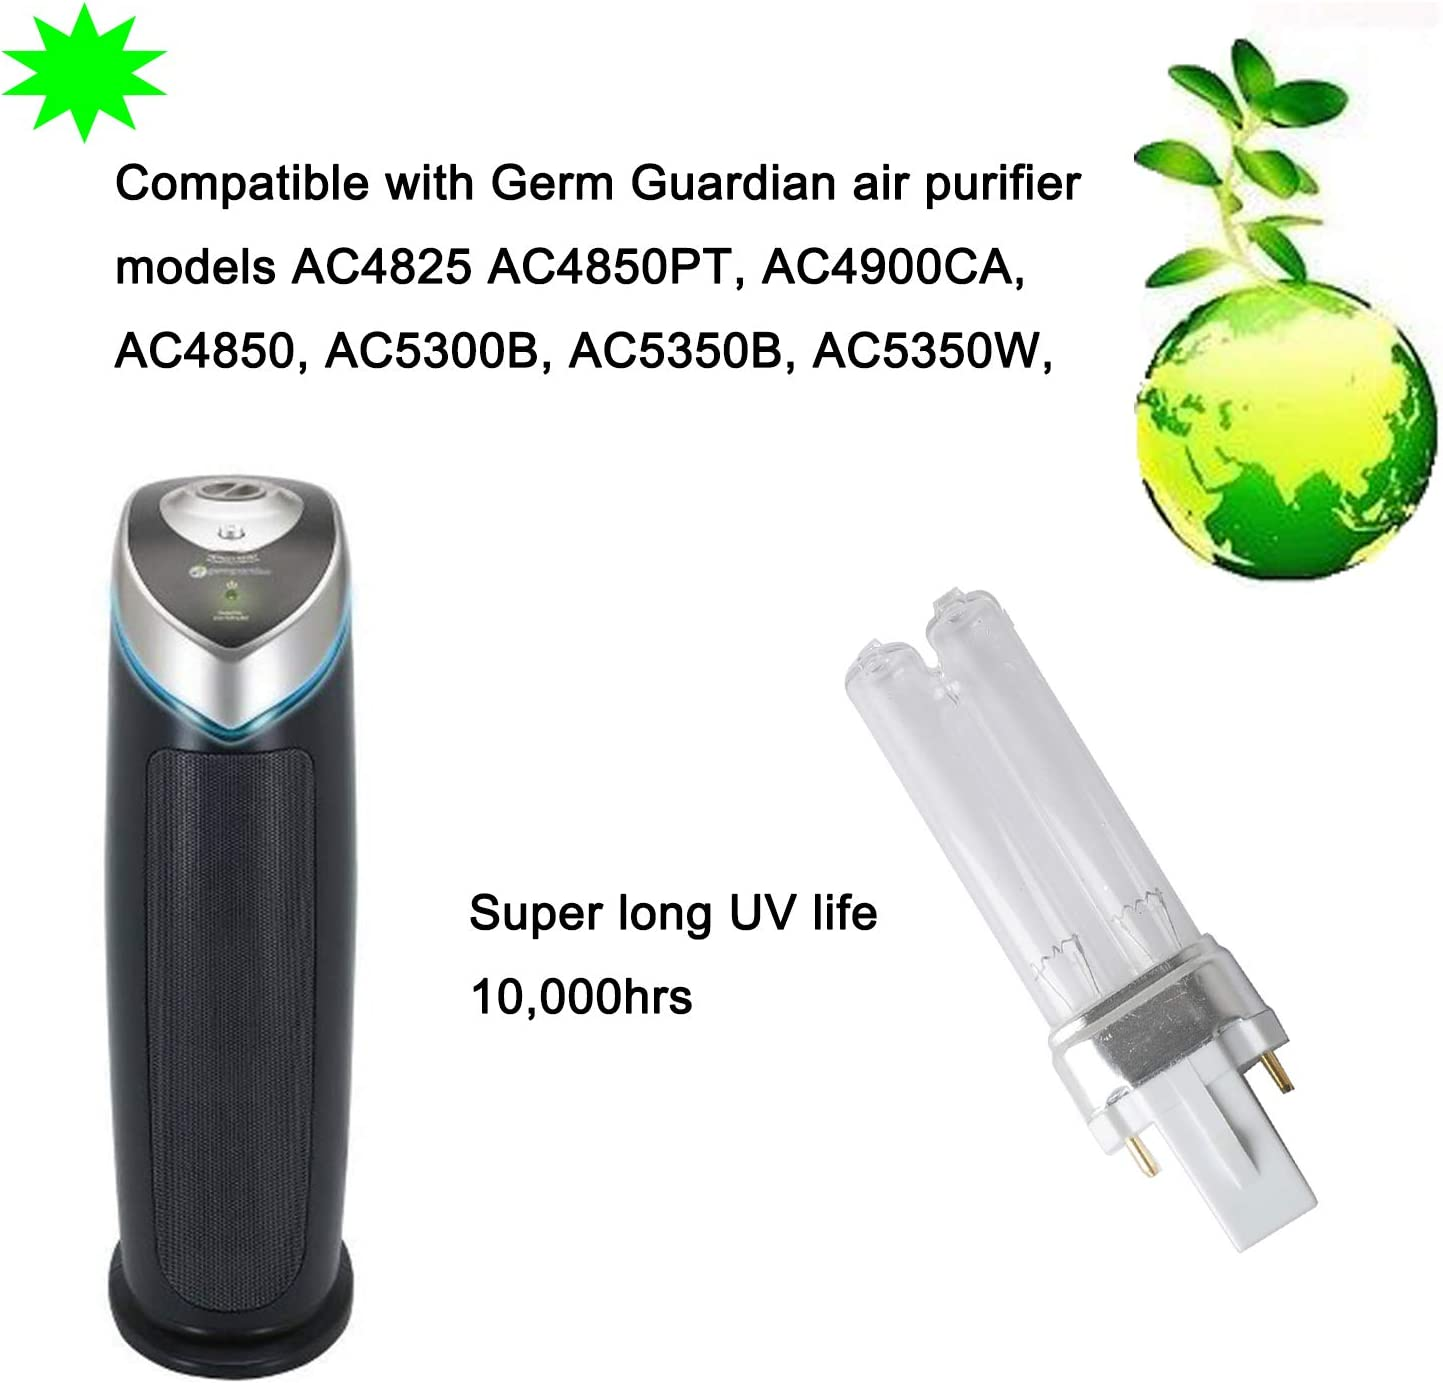 LB4000 Replacement UV-C Bulb Compatible with GermGuardian